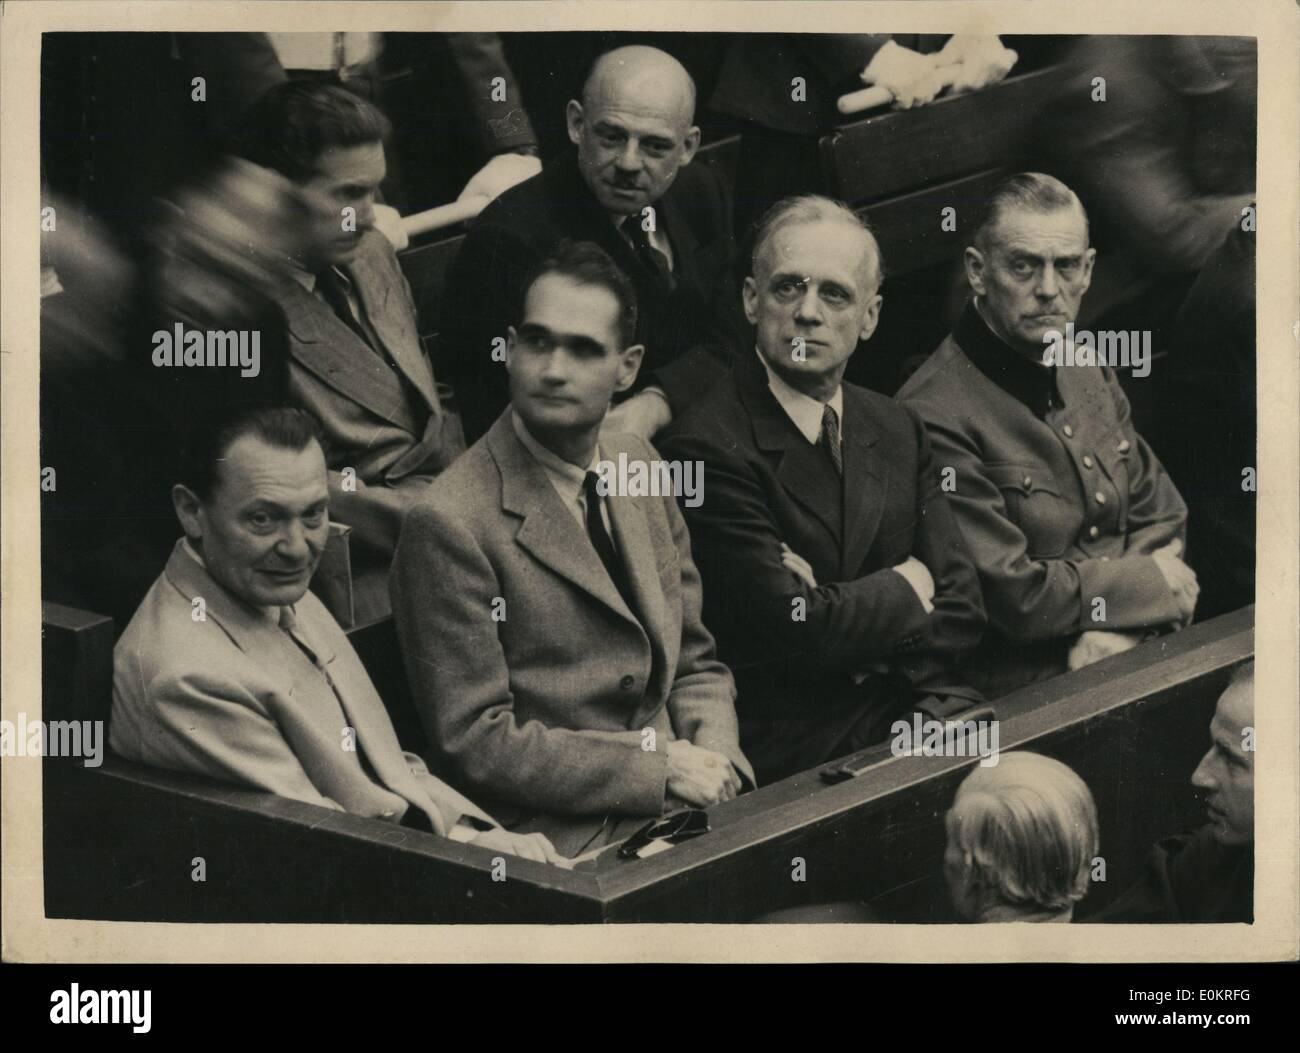 Oct. 10, 1946 - They know their fate. Five of the chief Nazis in Dock during stages of trail at Nuremberg. Five Stock Photo